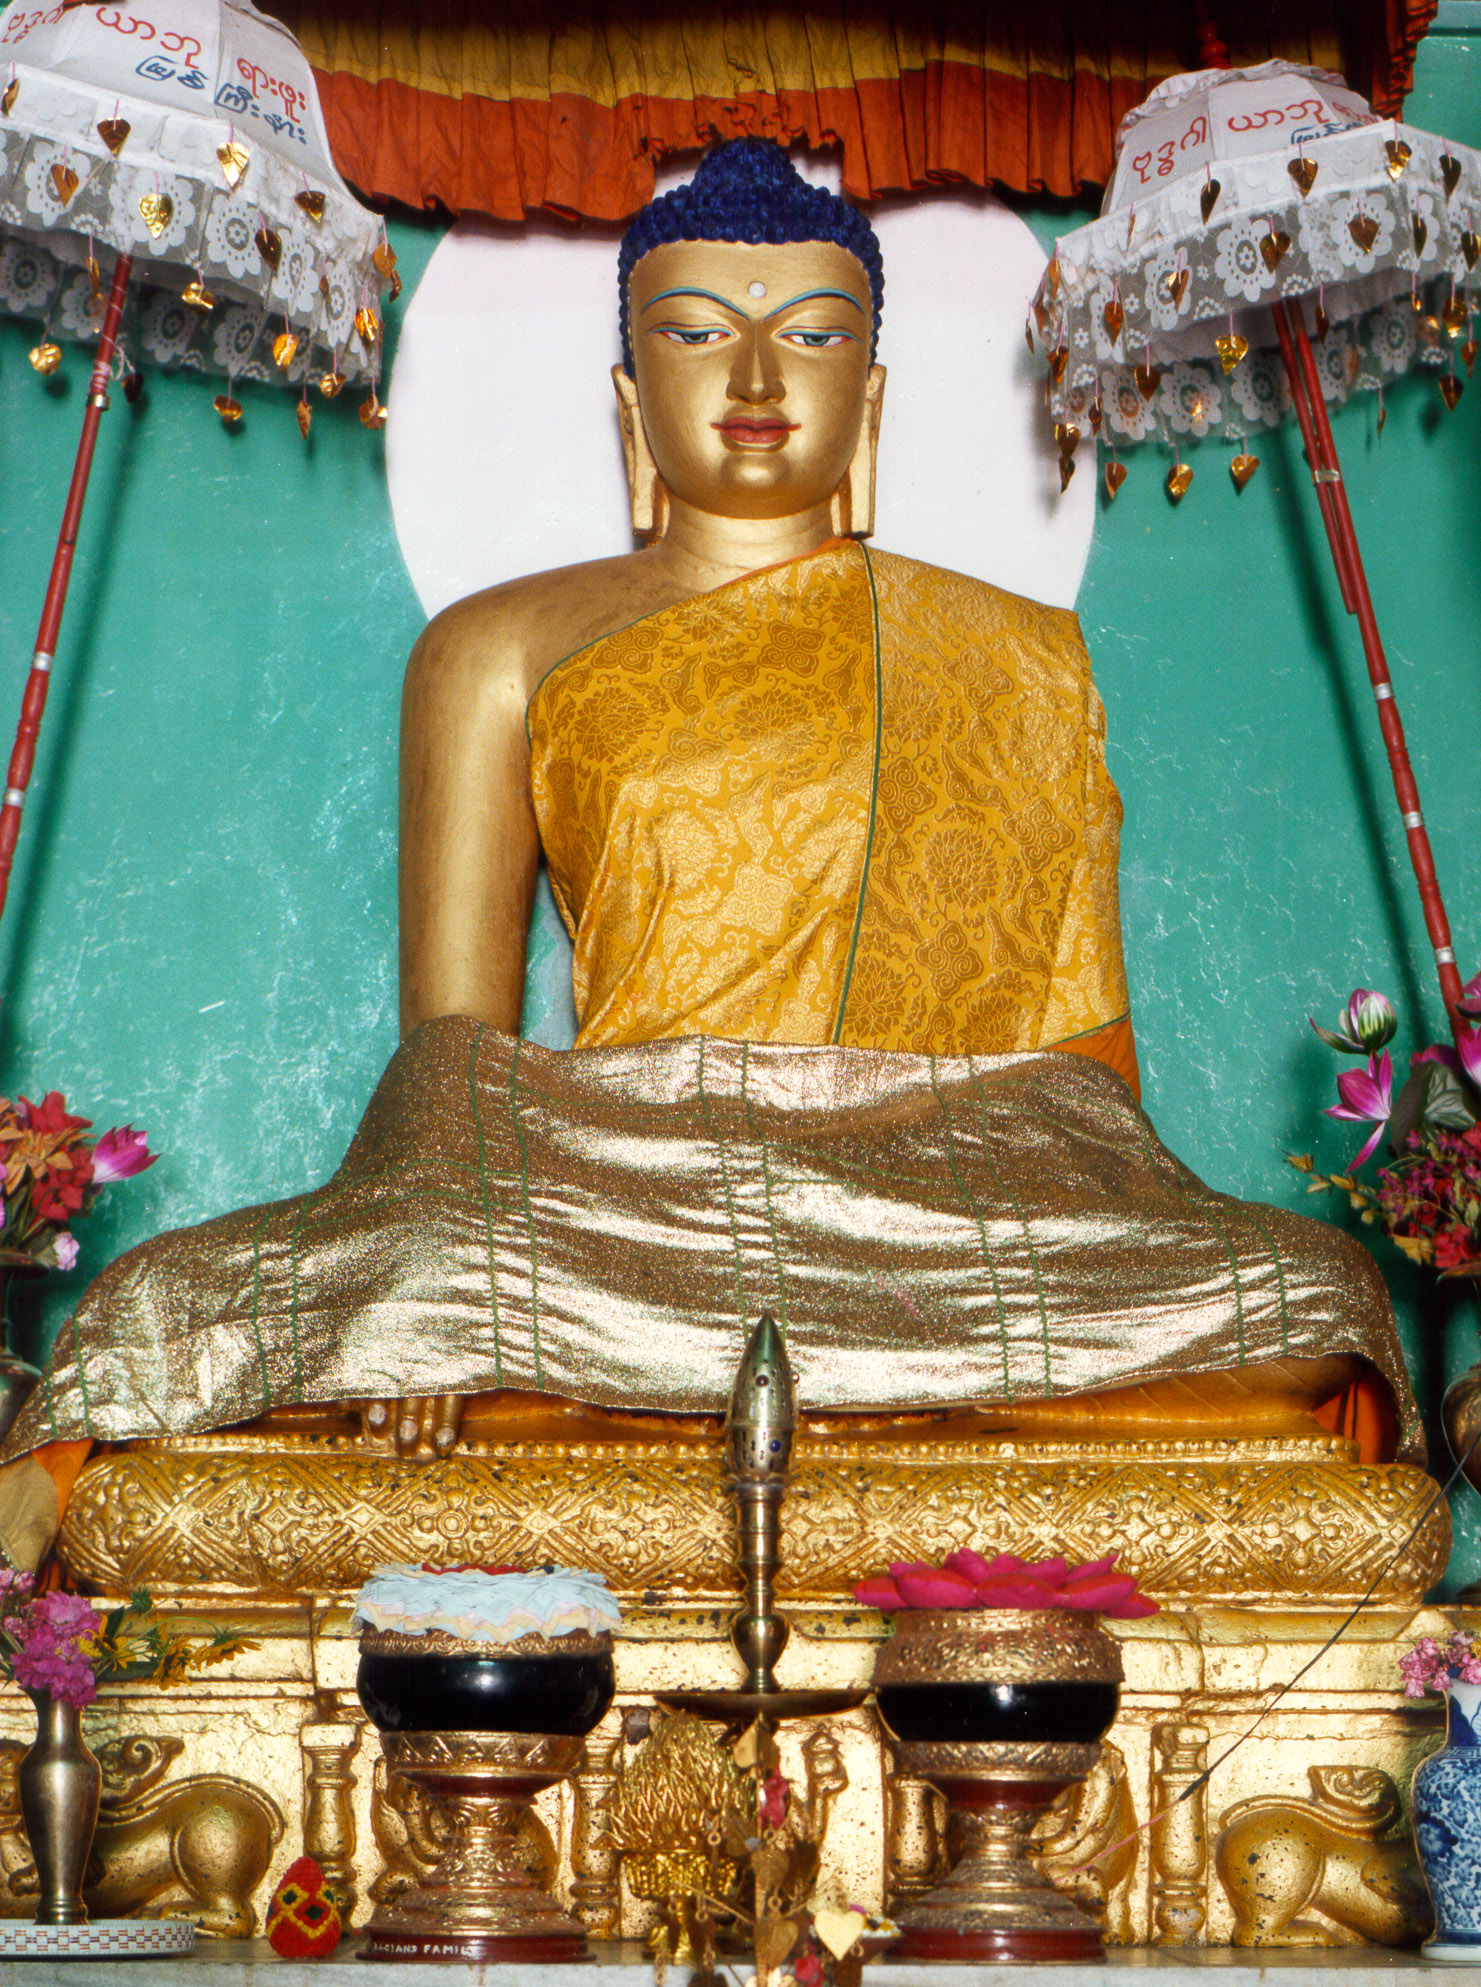 https://upload.wikimedia.org/wikipedia/commons/4/4a/Buddha_Bodhgaya.JPG